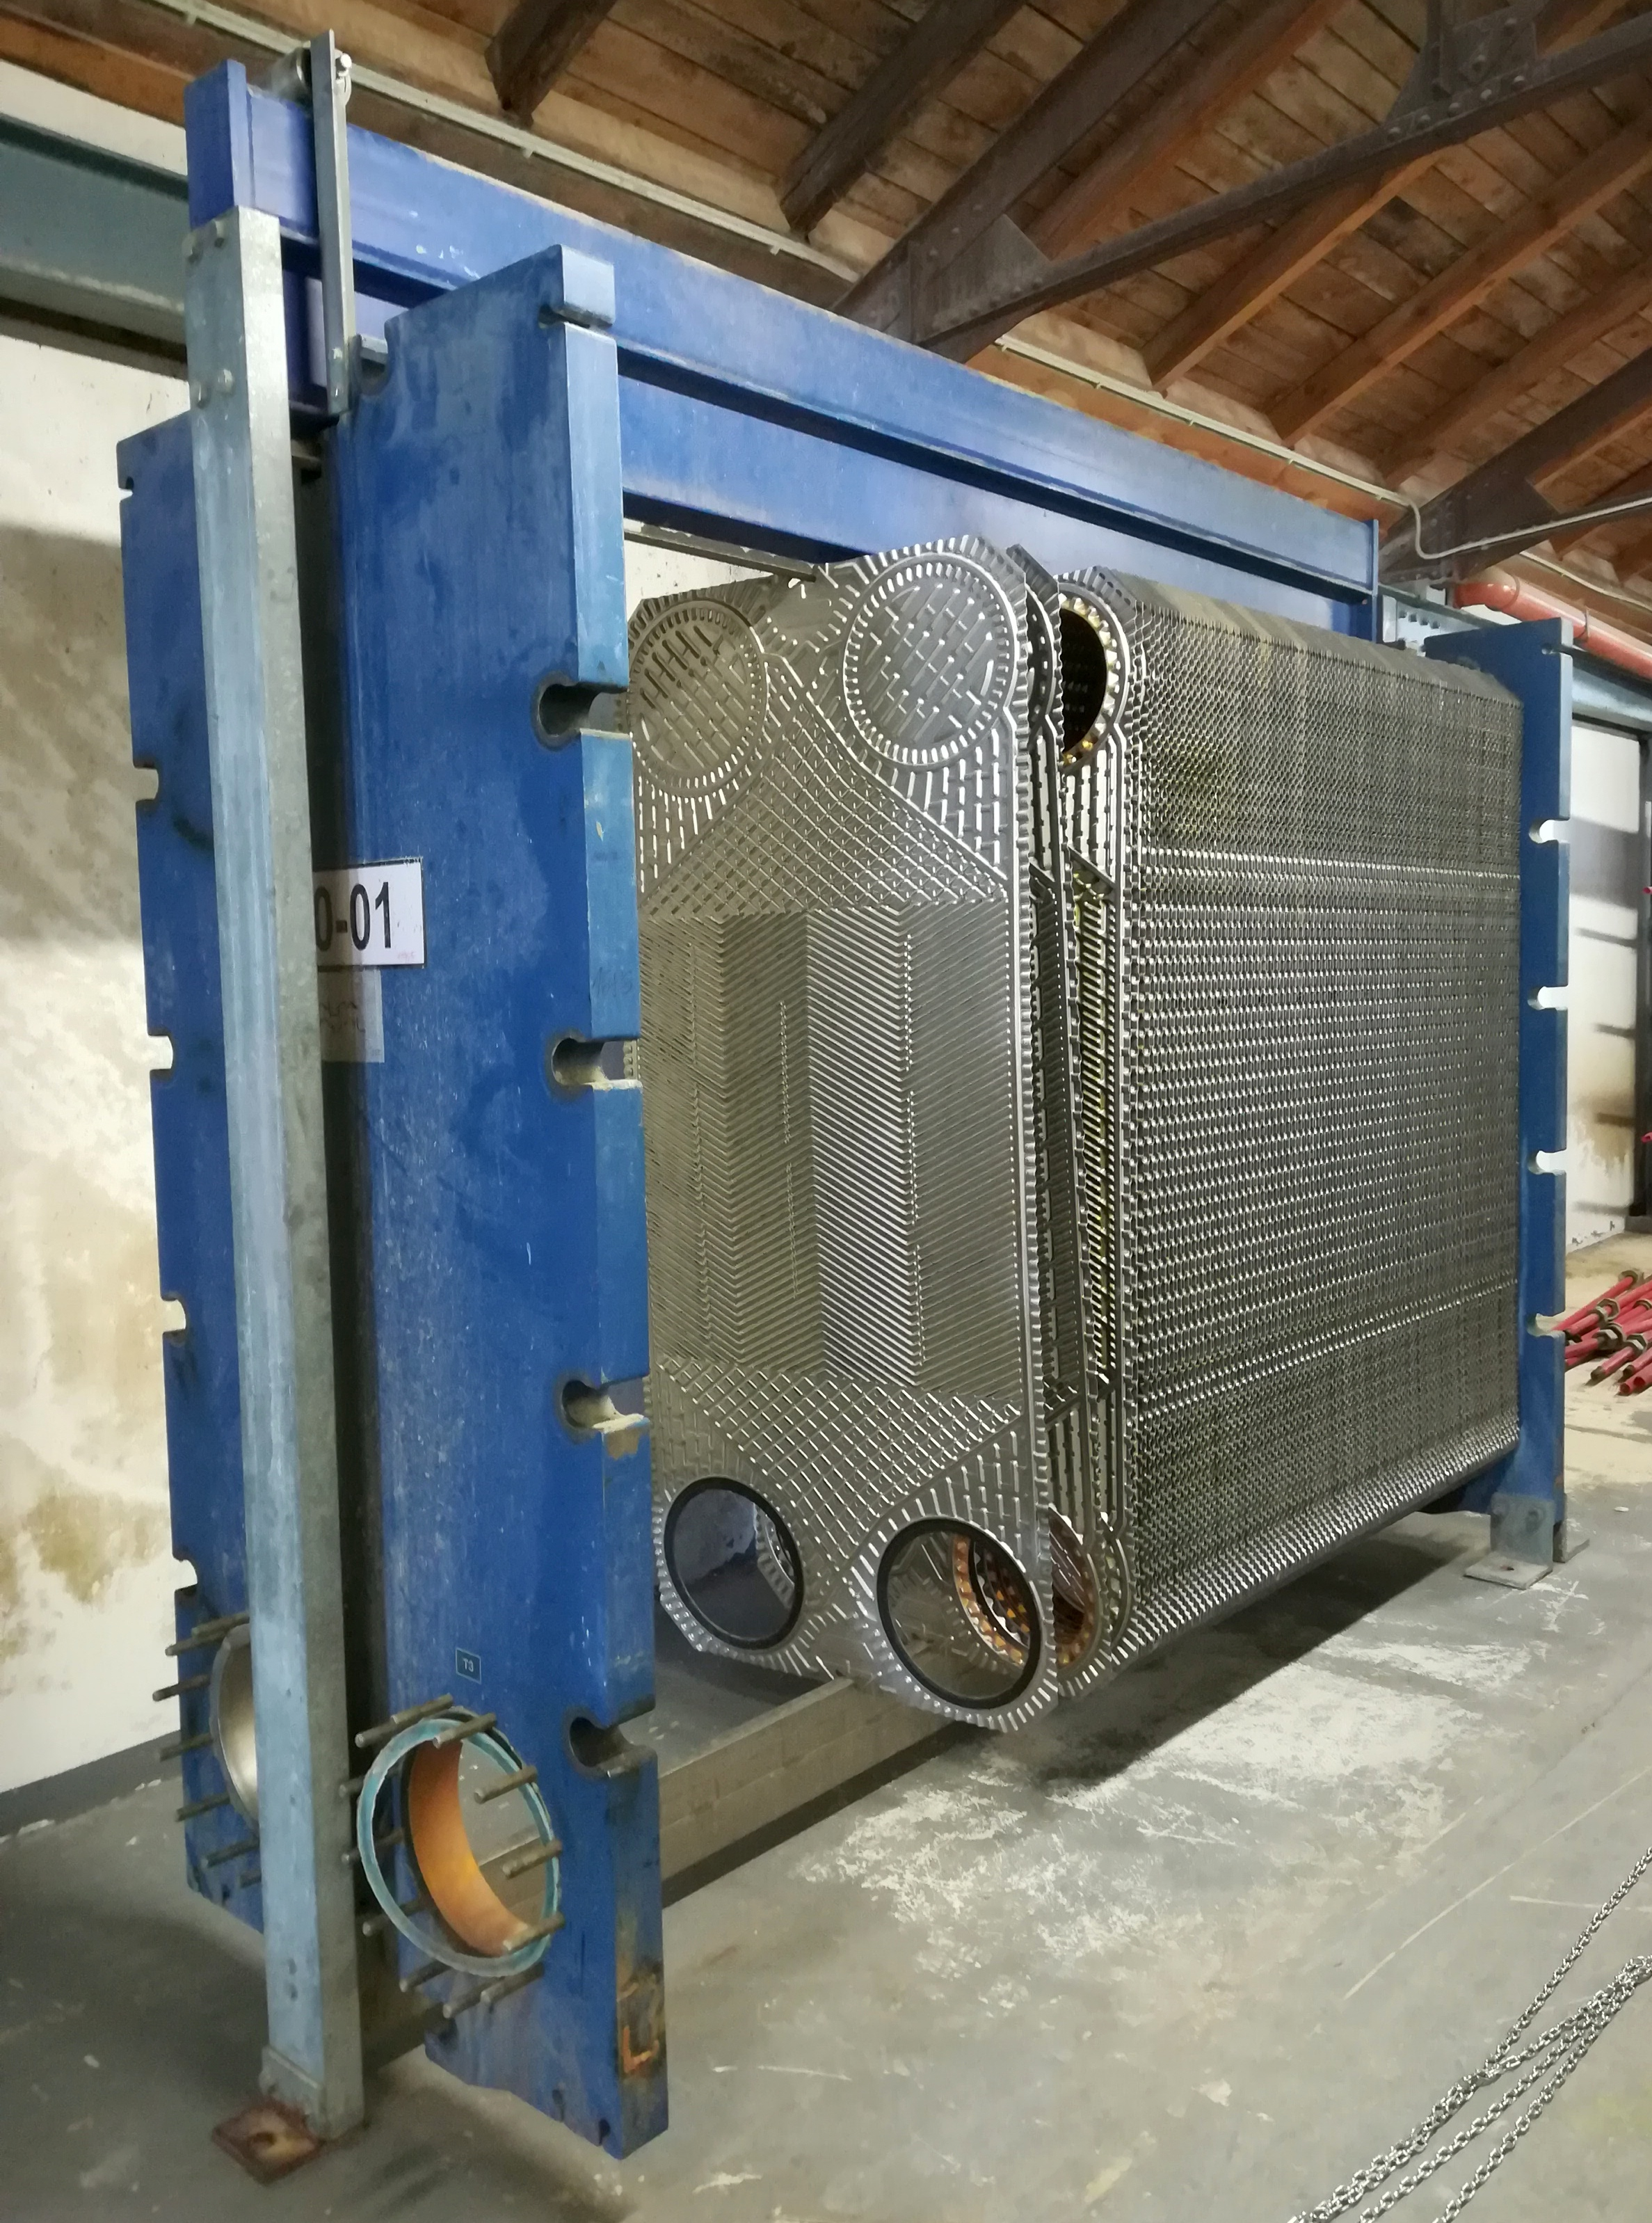 File:Plate heat exchanger - dismantled pic01 jpg - Wikimedia Commons